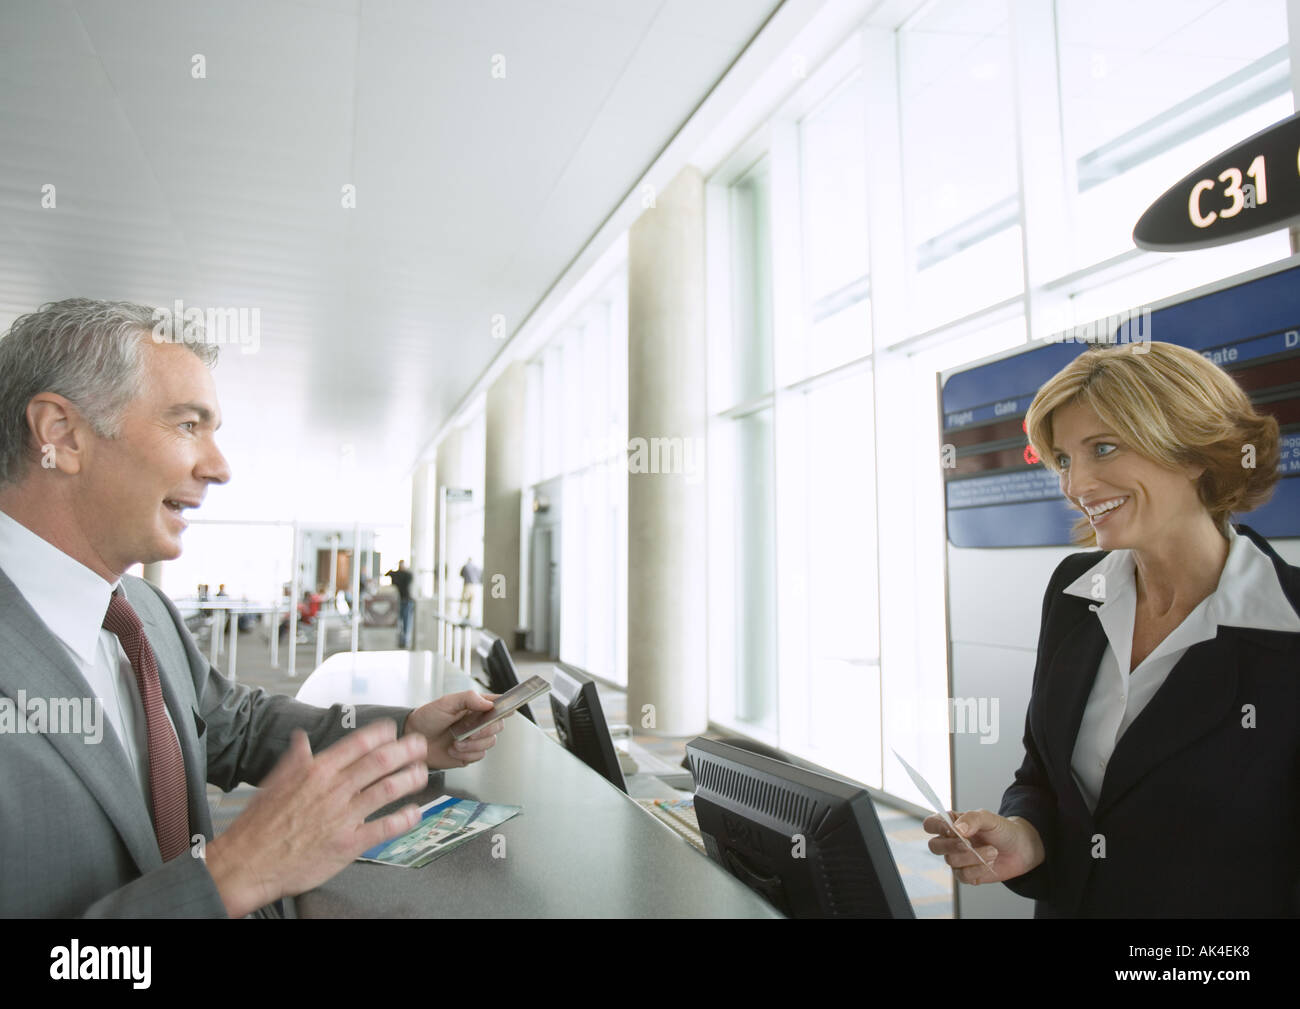 Businessman at airline check-in counter - Stock Image